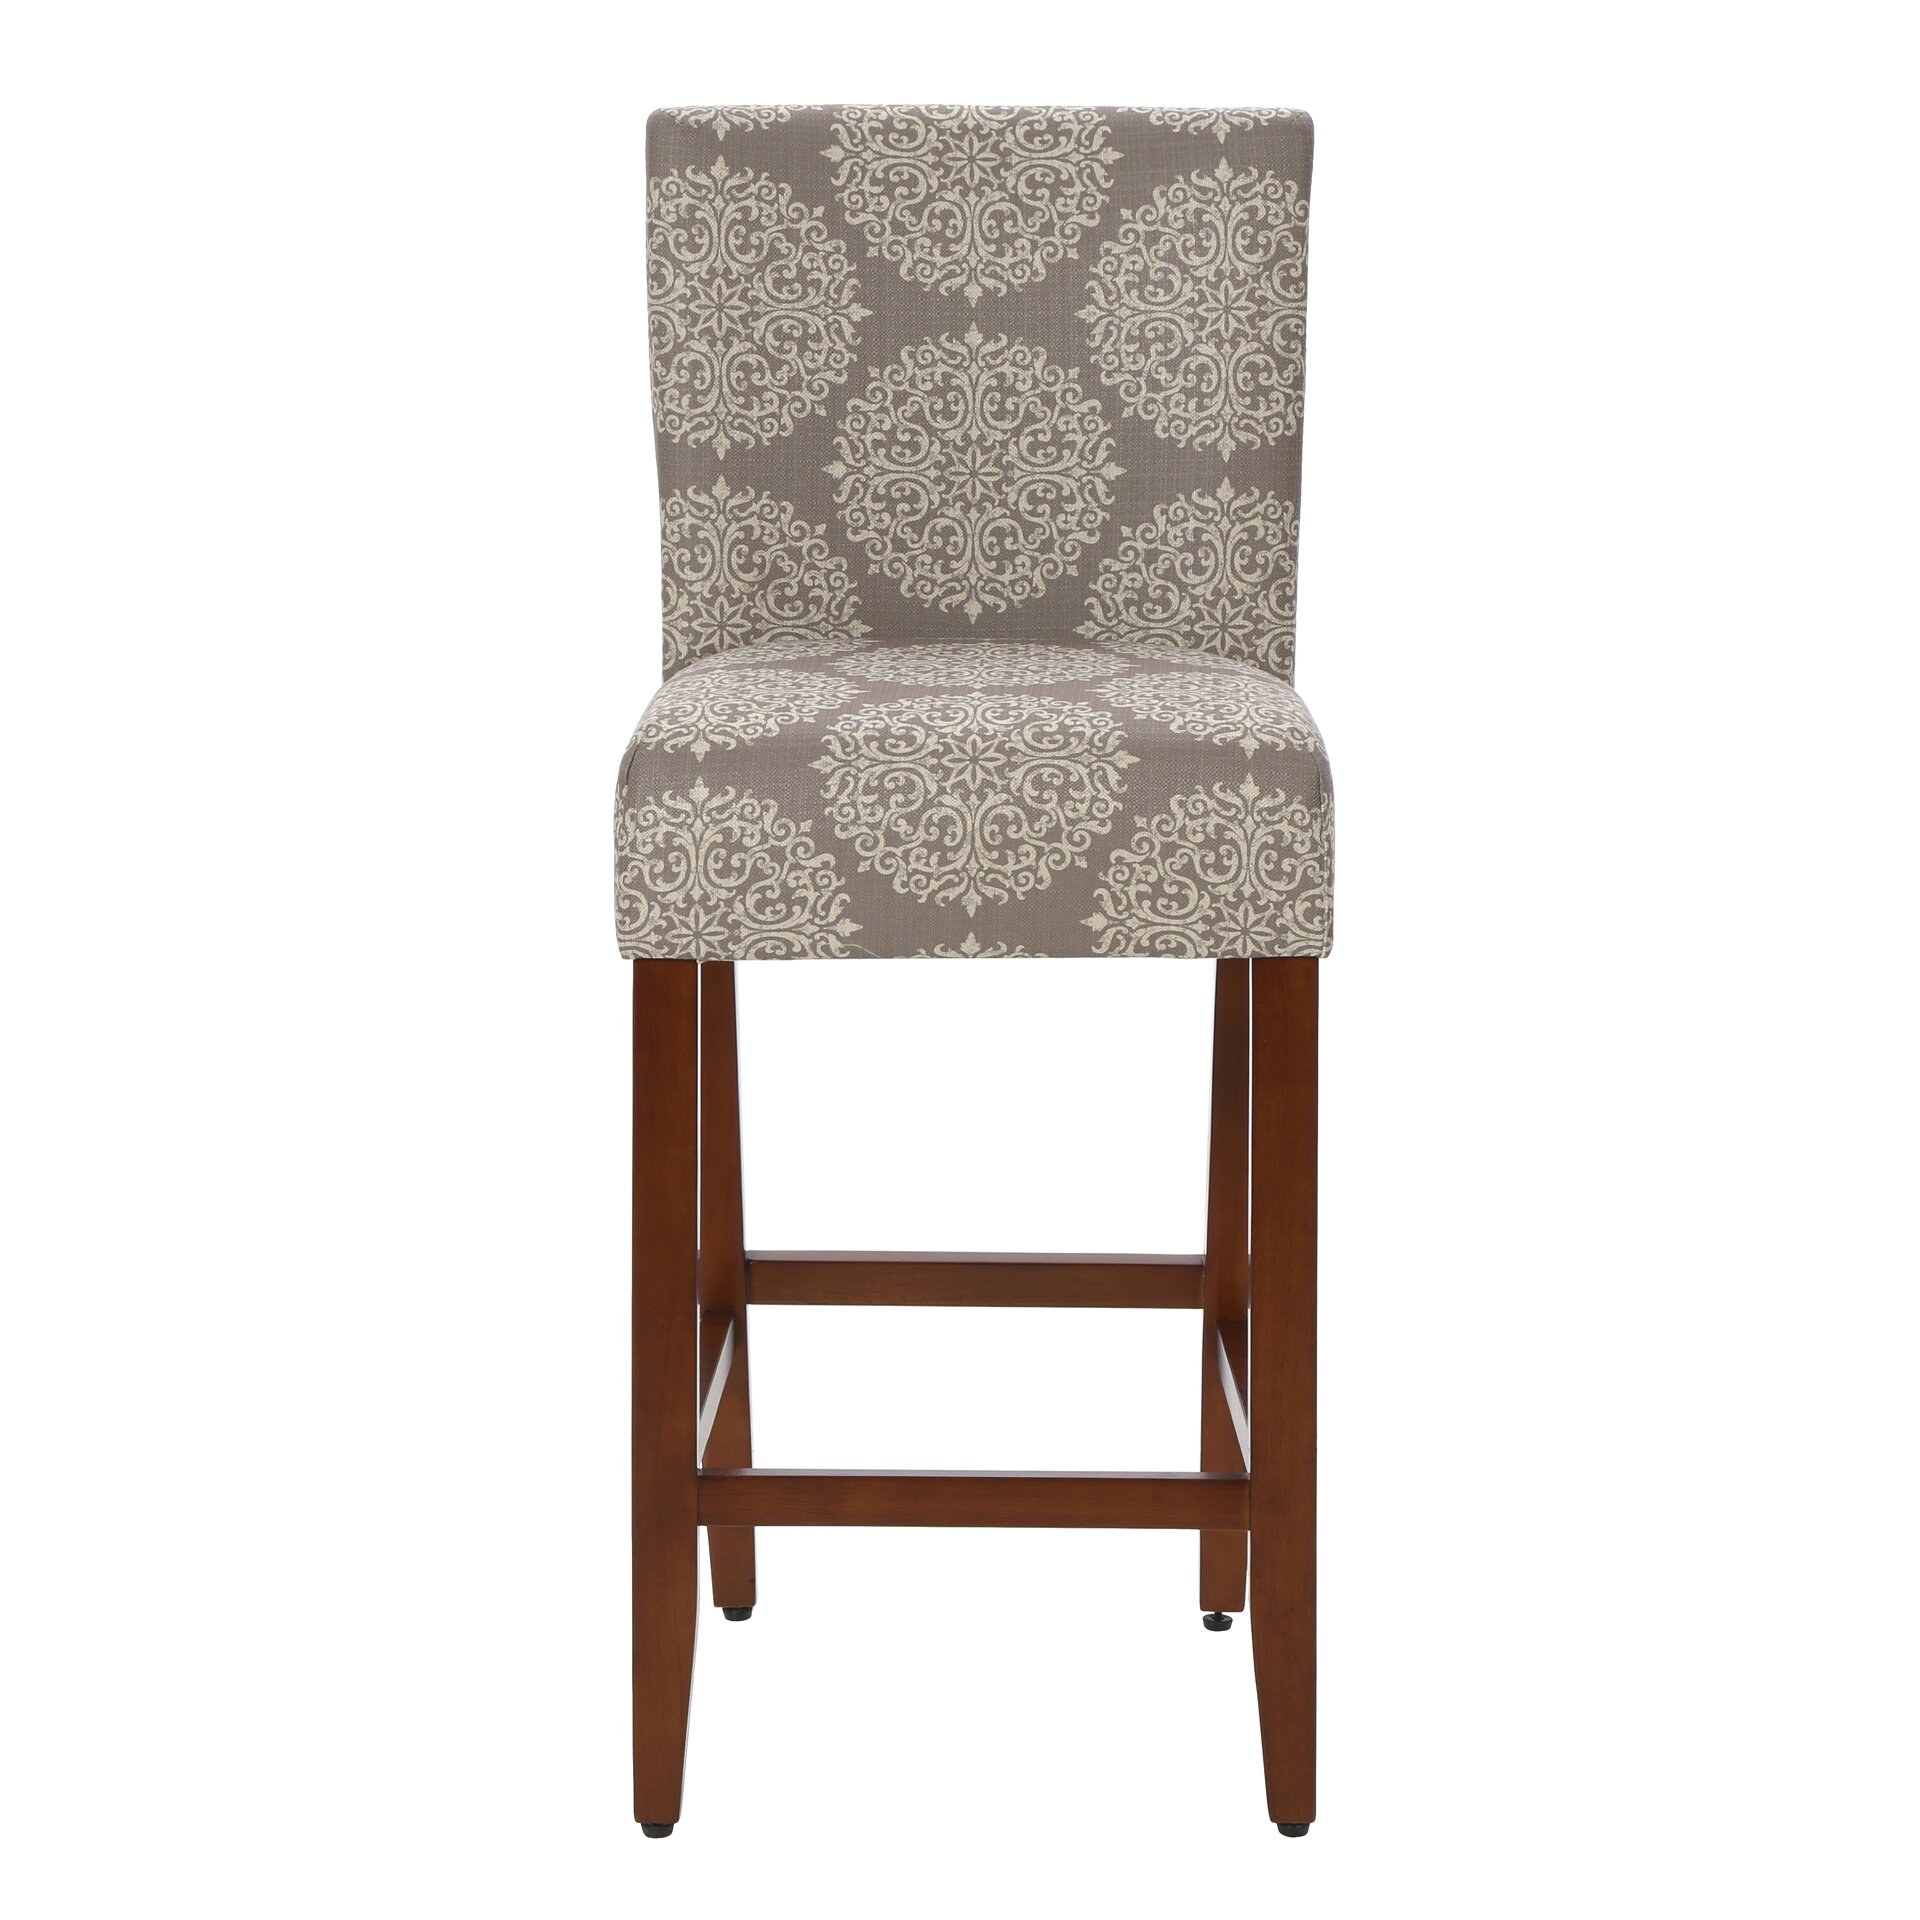 Outdoor Bar Stool Seat Cushions Covers